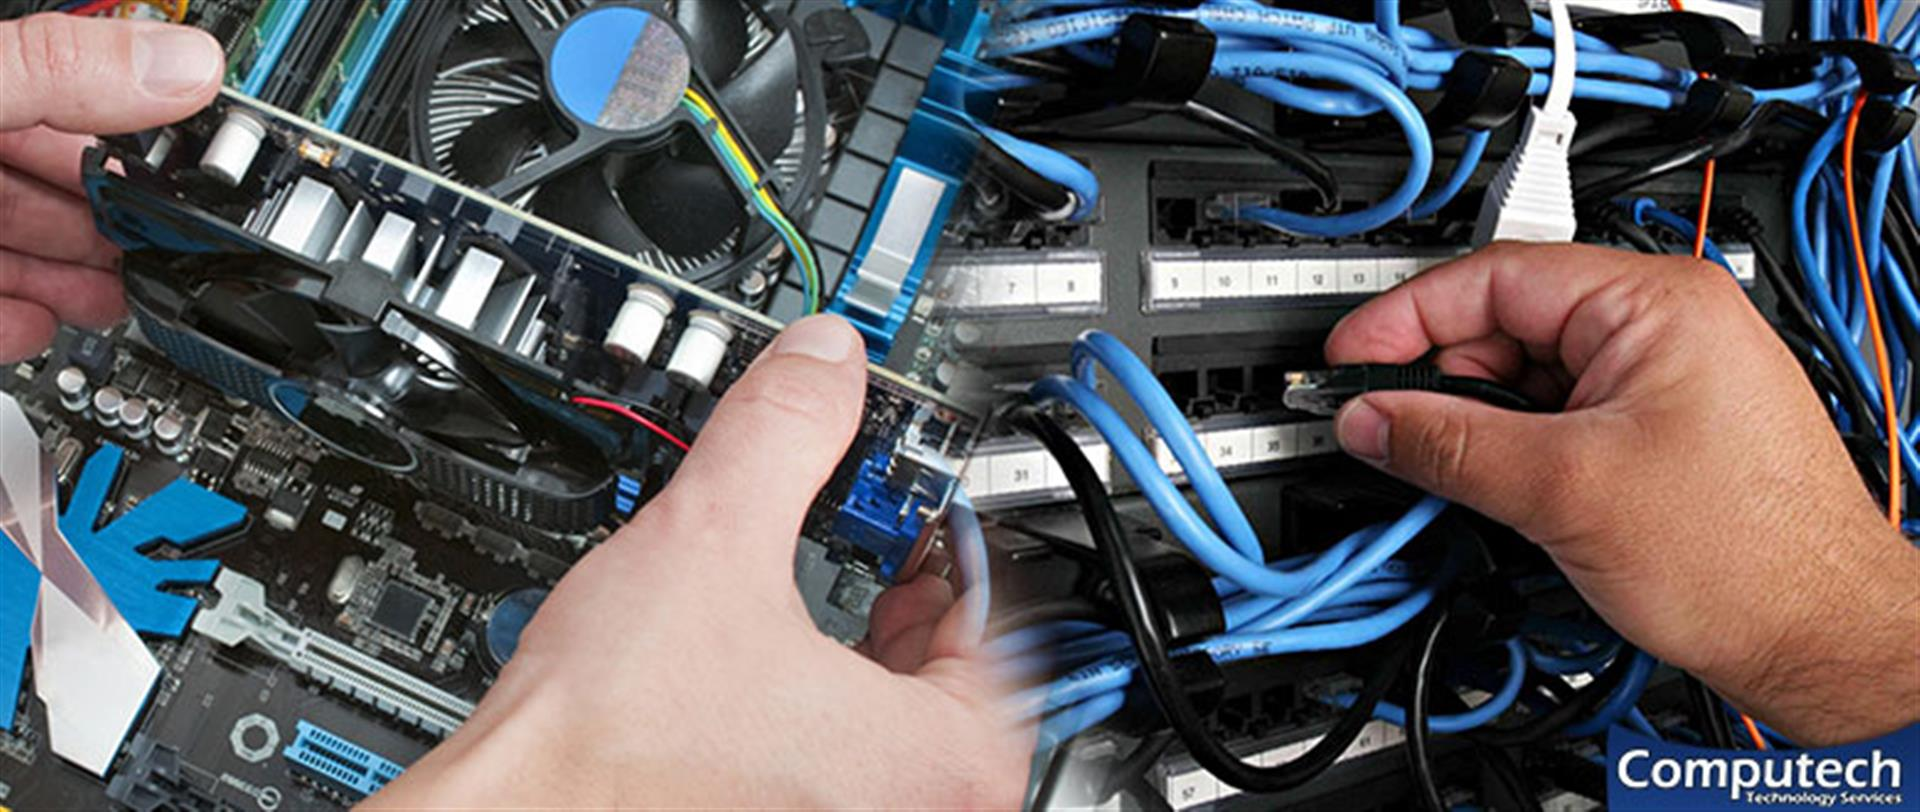 Valdosta Georgia On Site PC & Printer Repairs, Network, Voice & Data Cabling Services